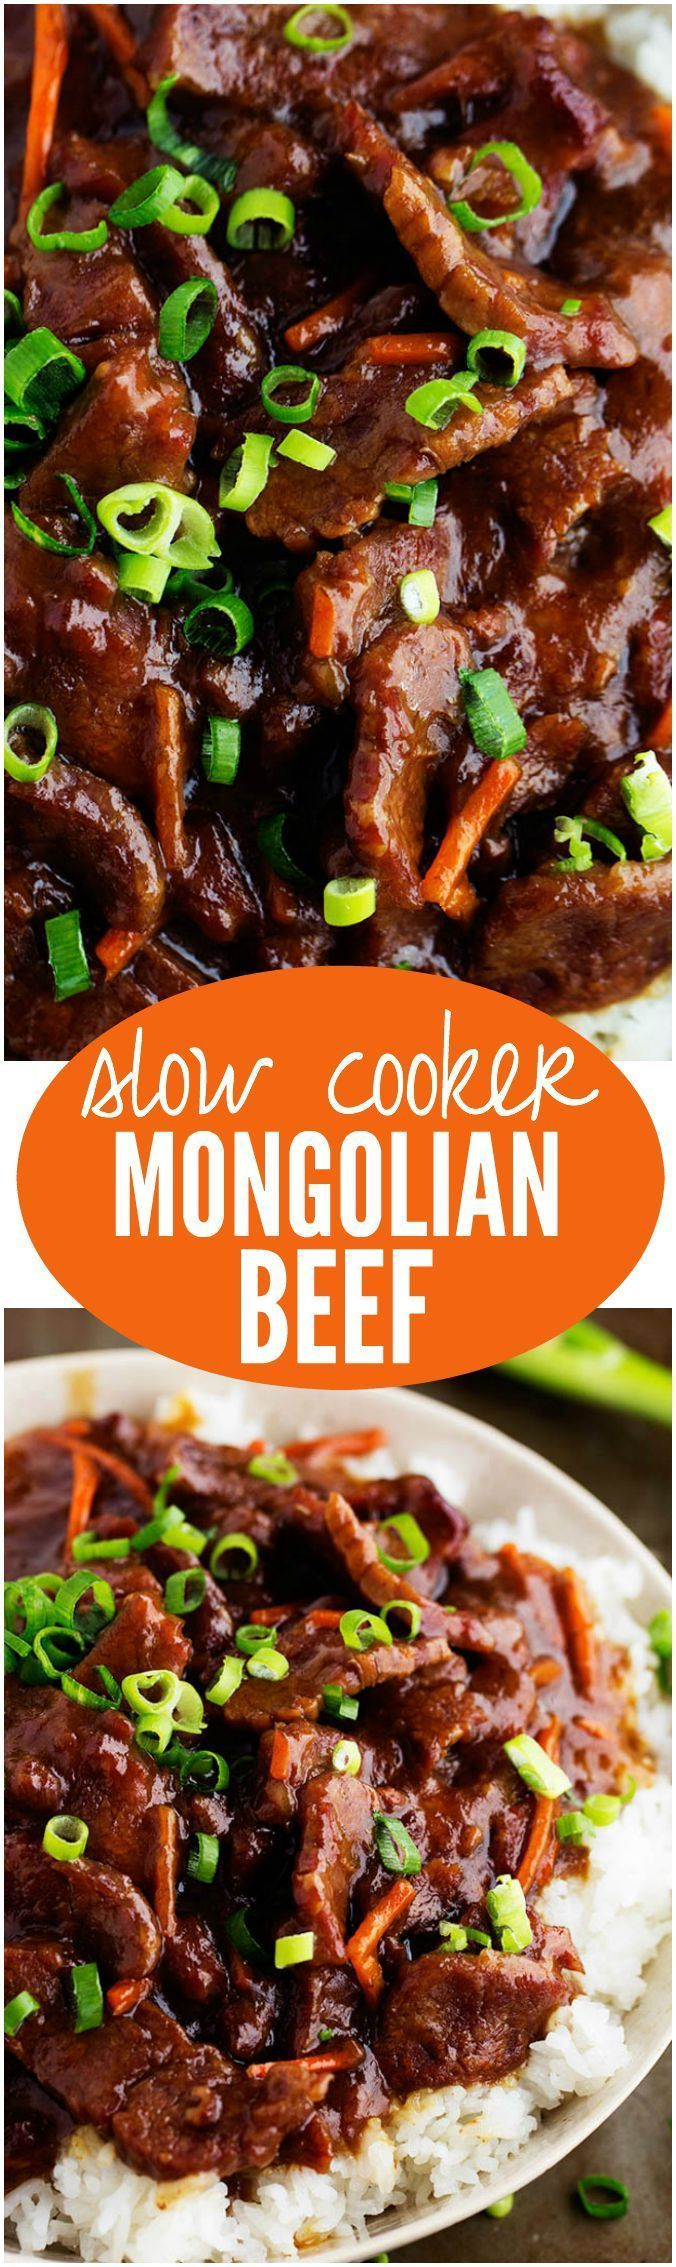 This Slow Cooker Mongolian Beef is melt in your mouth tender and has AMAZING flavor! One of the best and easiest things to make on weeknights